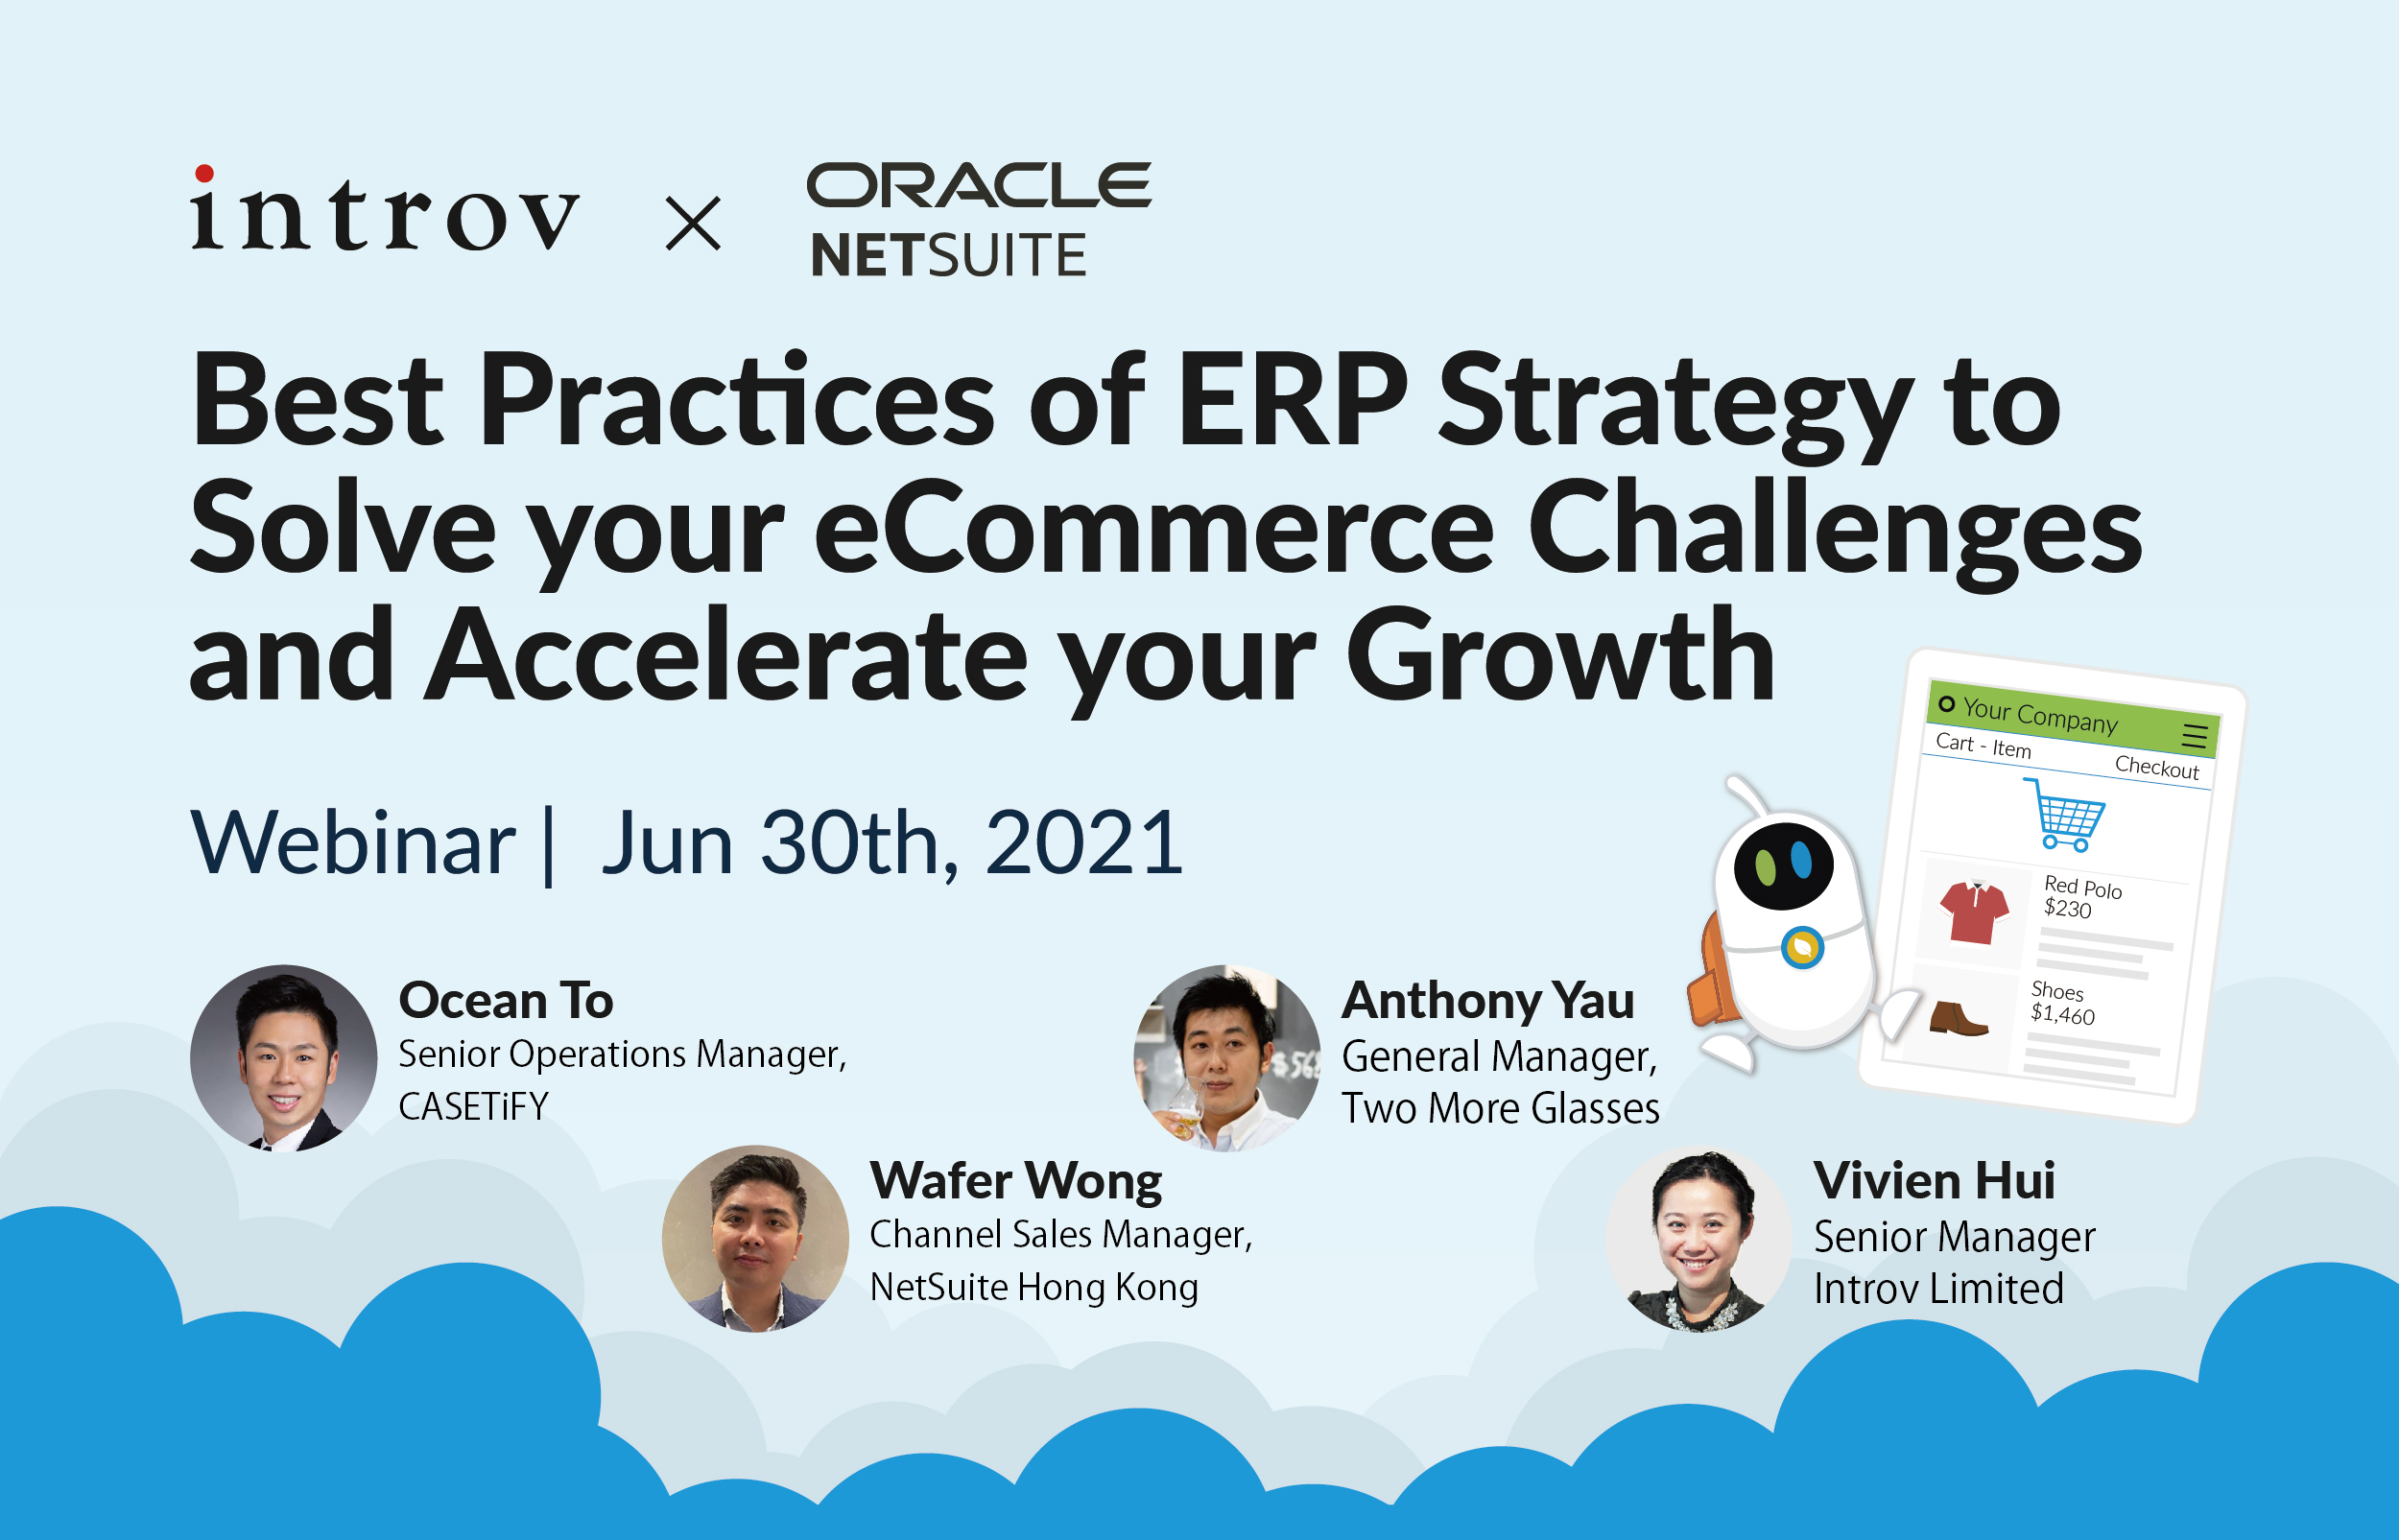 Webinar: Best Practices of ERP Strategy to Solve your eCommerce Challenges and Accelerate your Growth (June 30th, 2021)